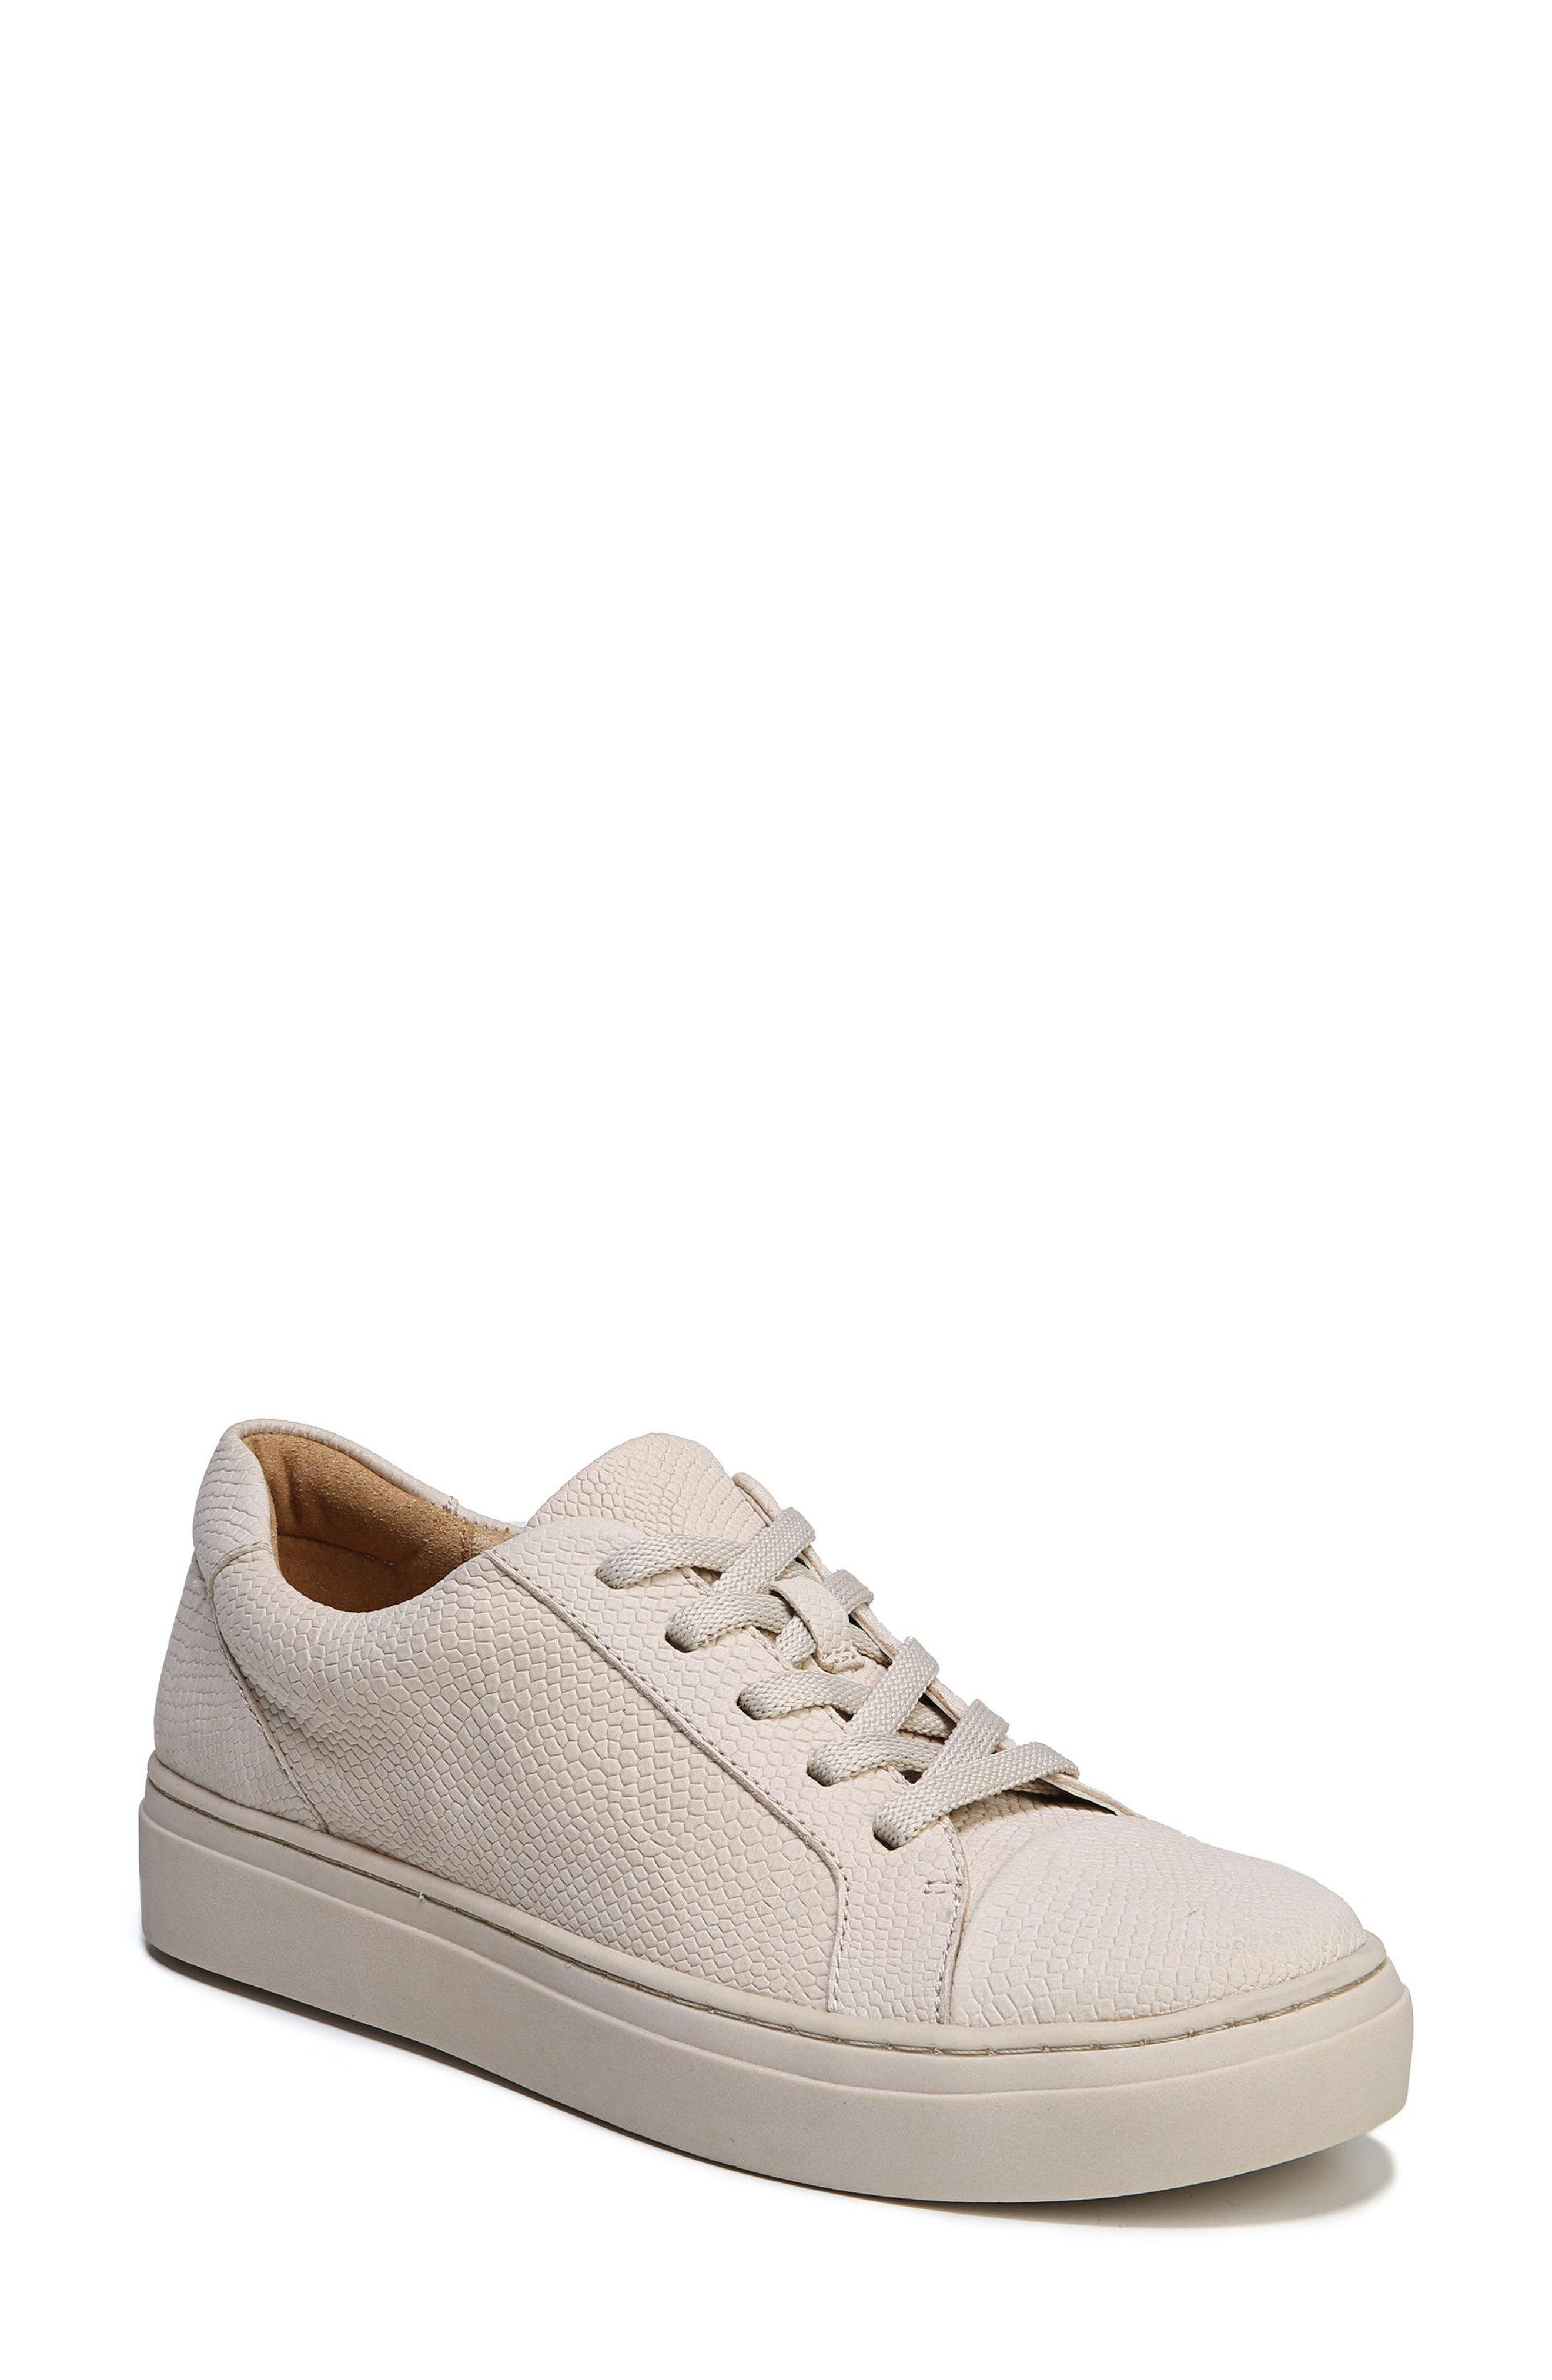 Main Image - Naturalizer Cairo Sneaker (Women)